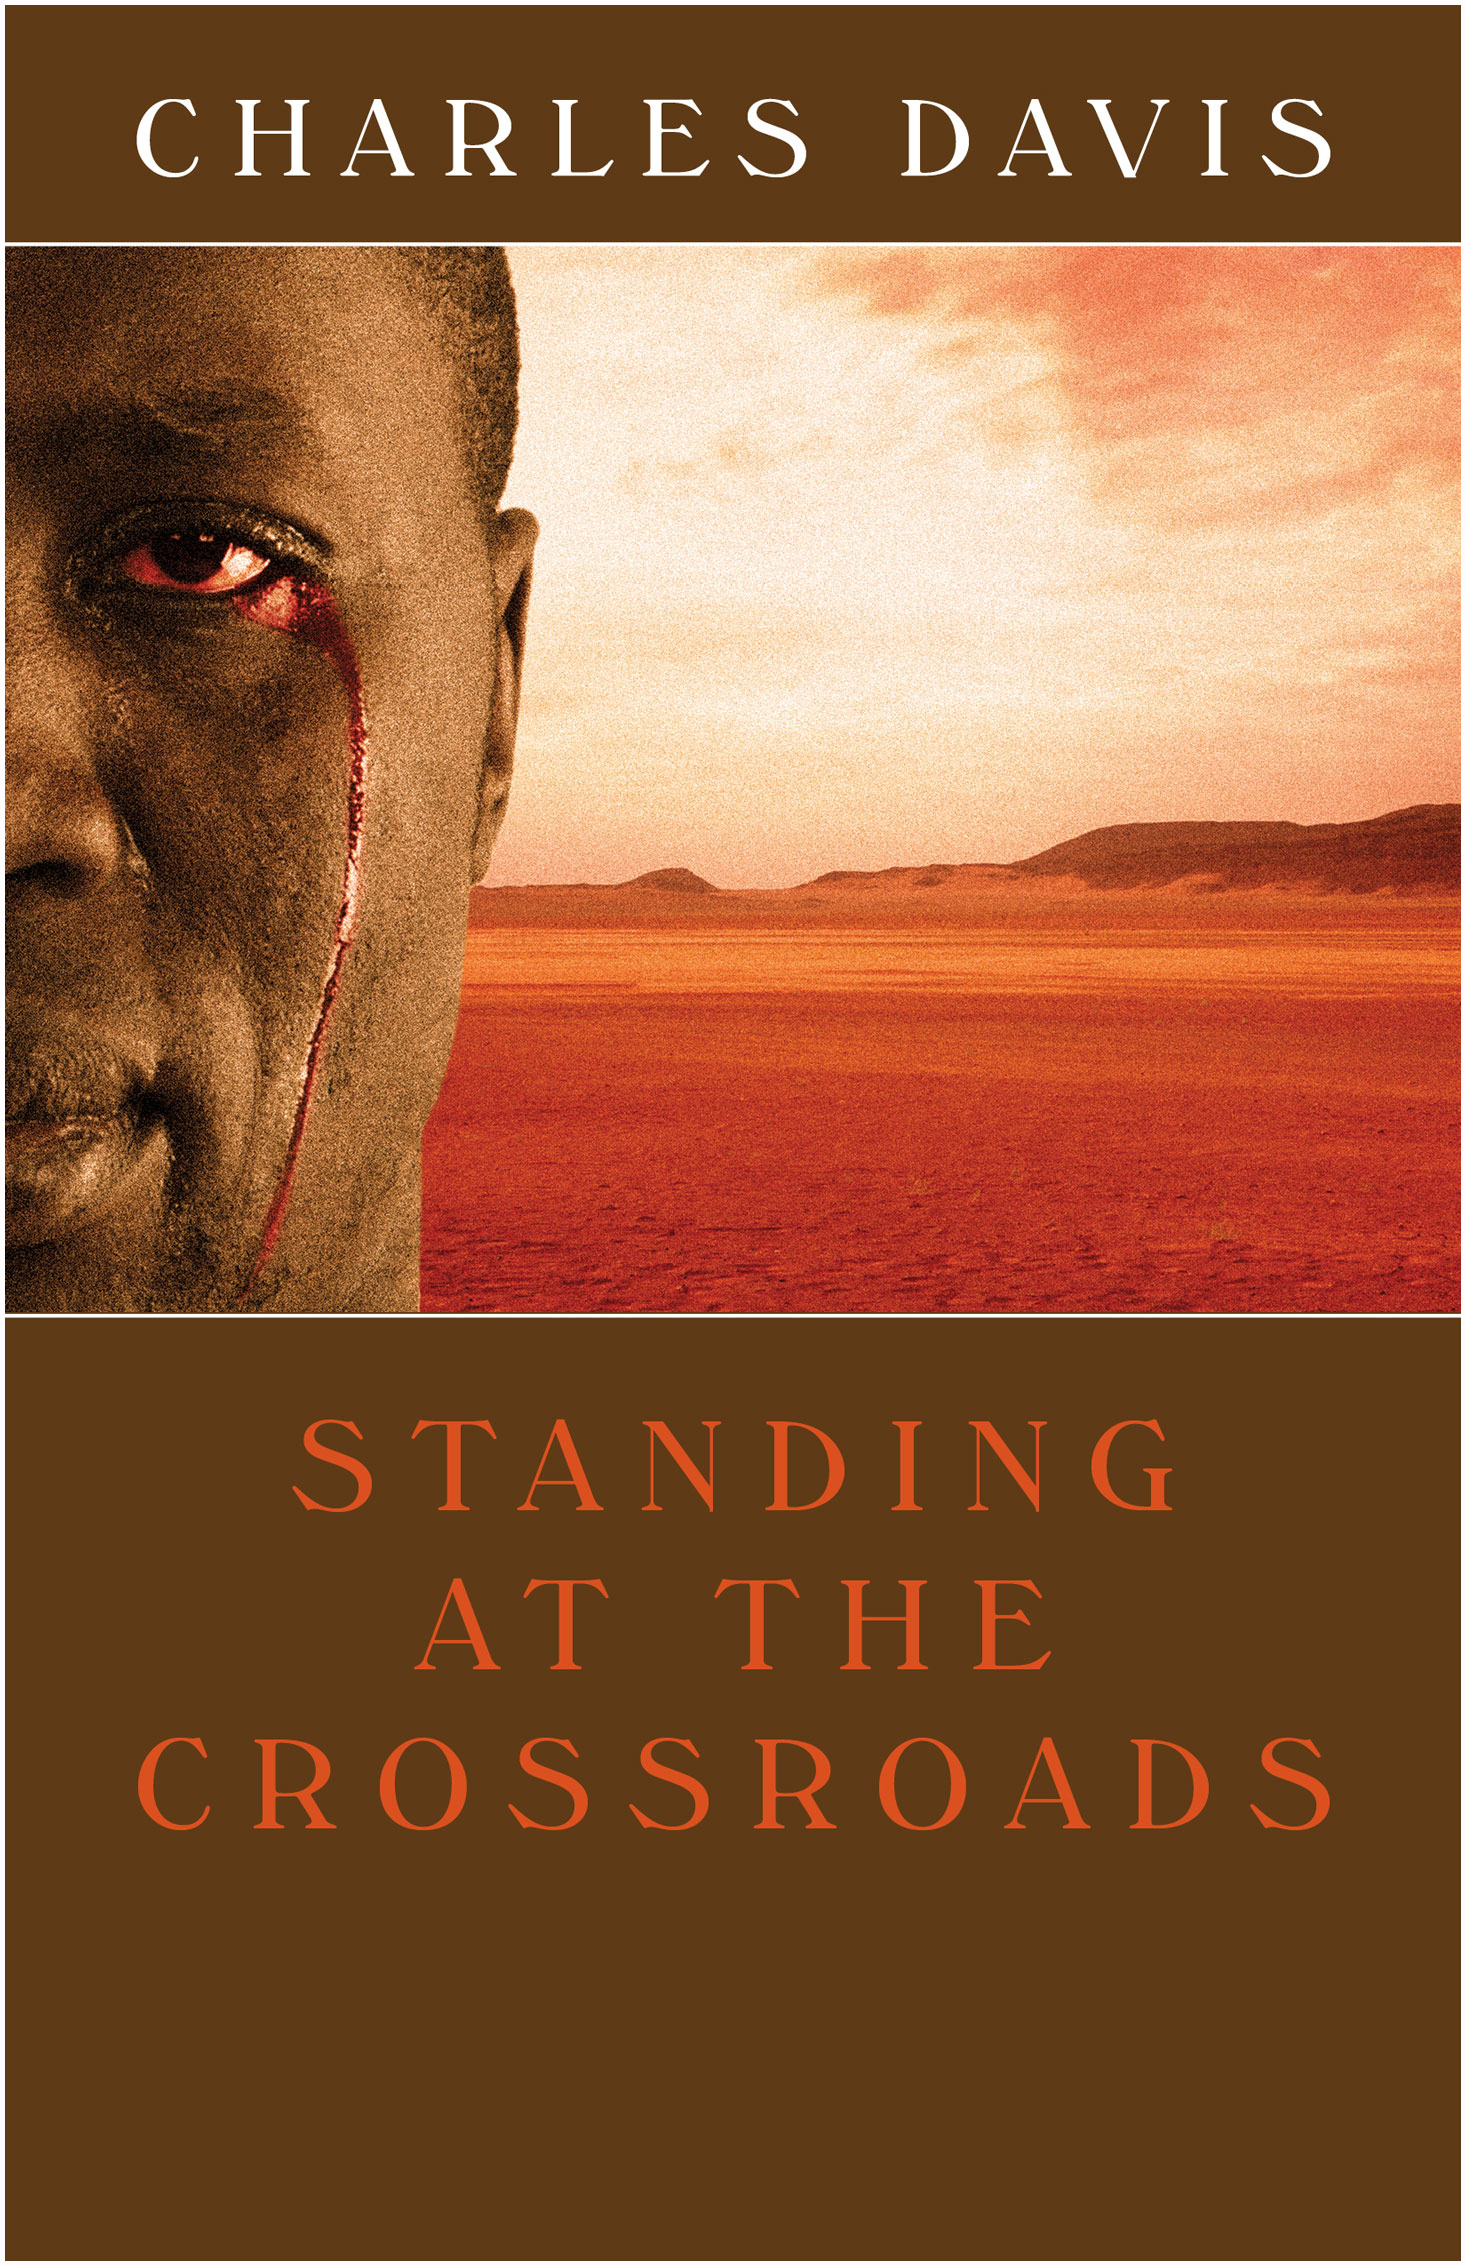 Standing at the Crossroads